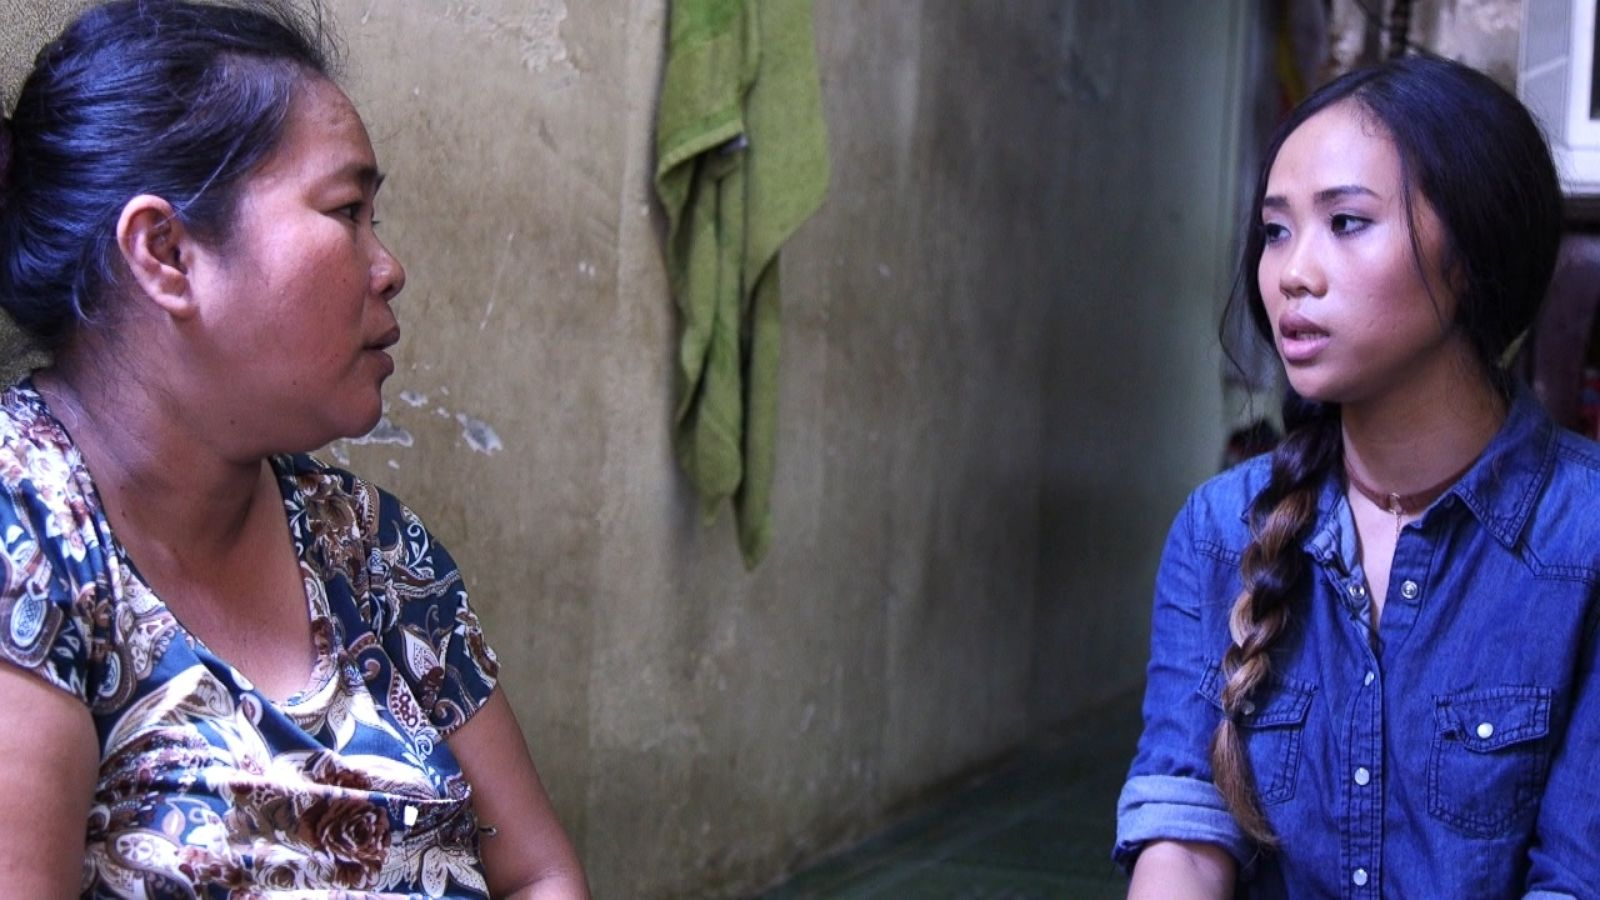 Inside the world of Cambodia's child sex trade, as told through the eyes of  a survivor - ABC News